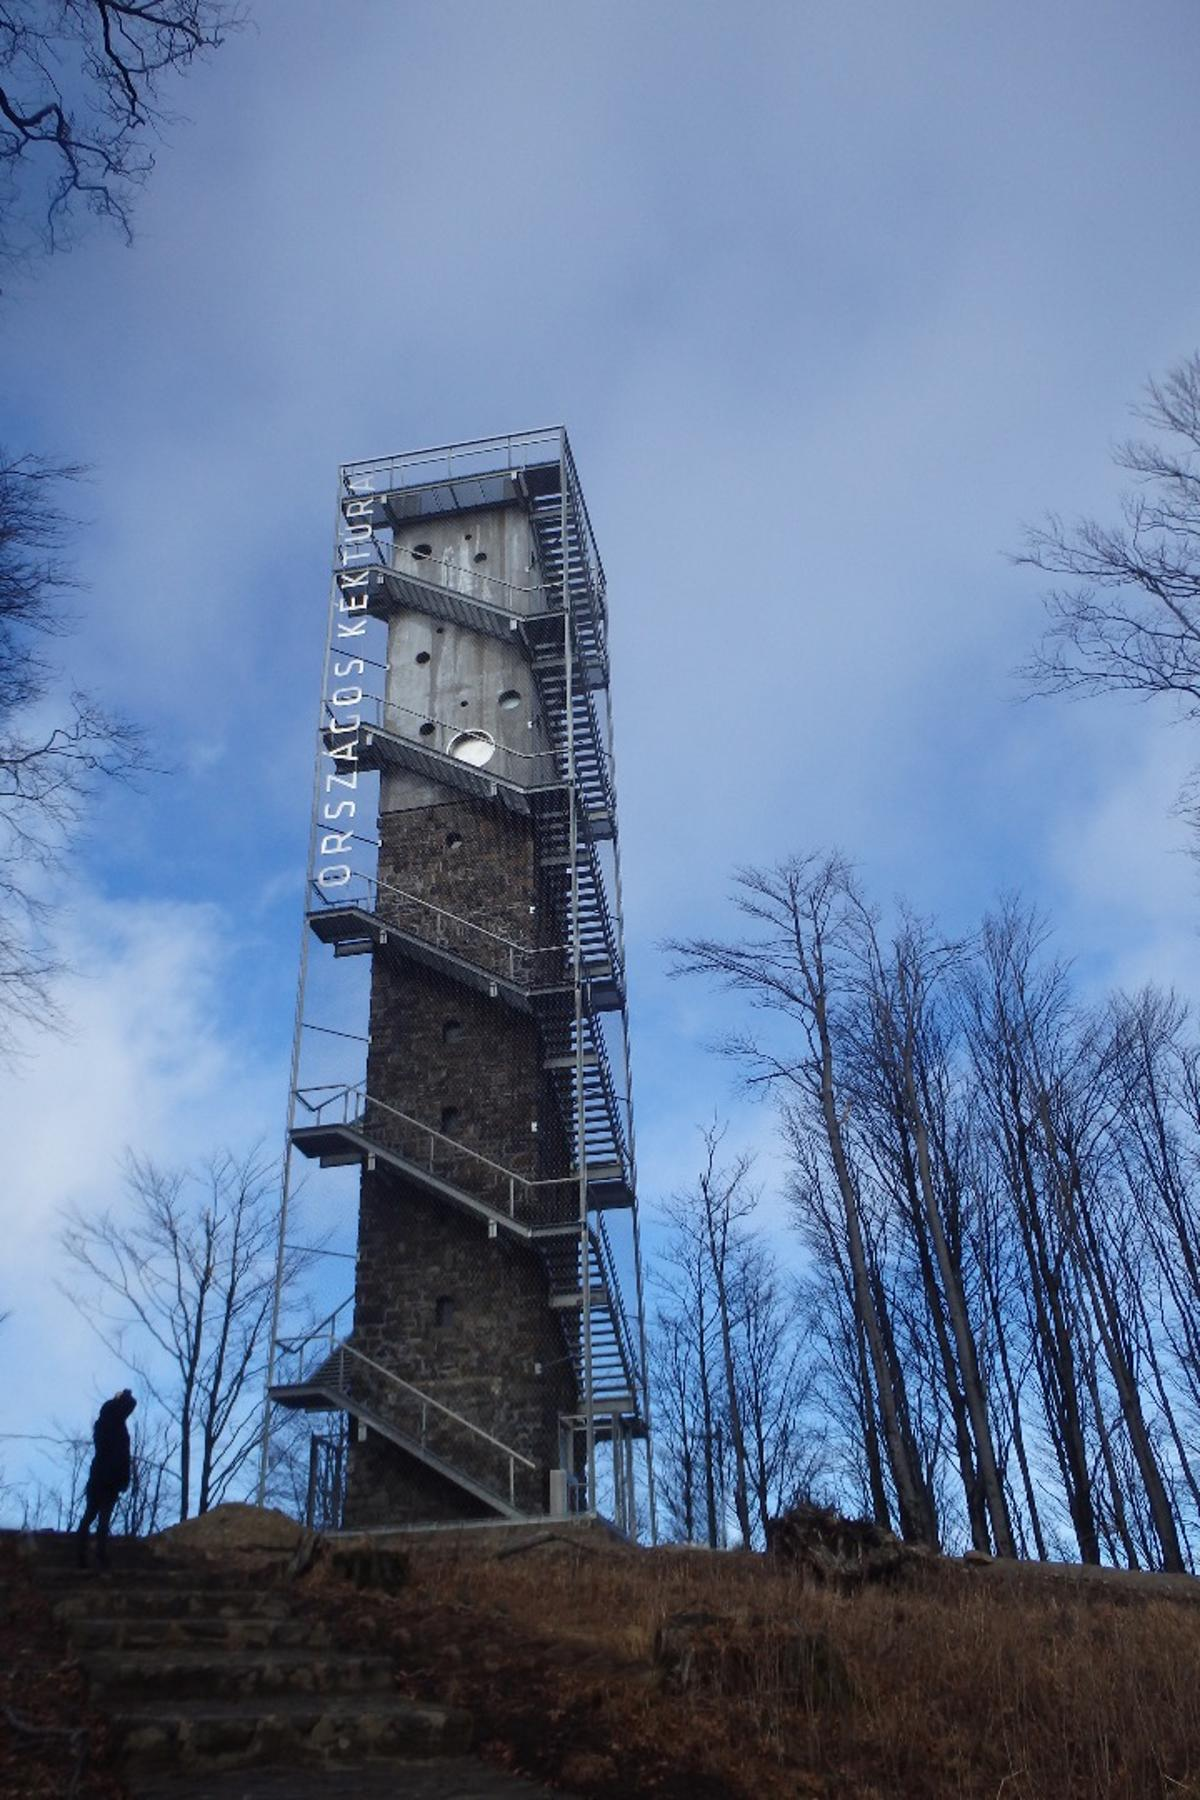 Originally rising to 17 m (55 ft) the Lookout Tower at Galyatető has been extended in height to 30 m (98 ft)